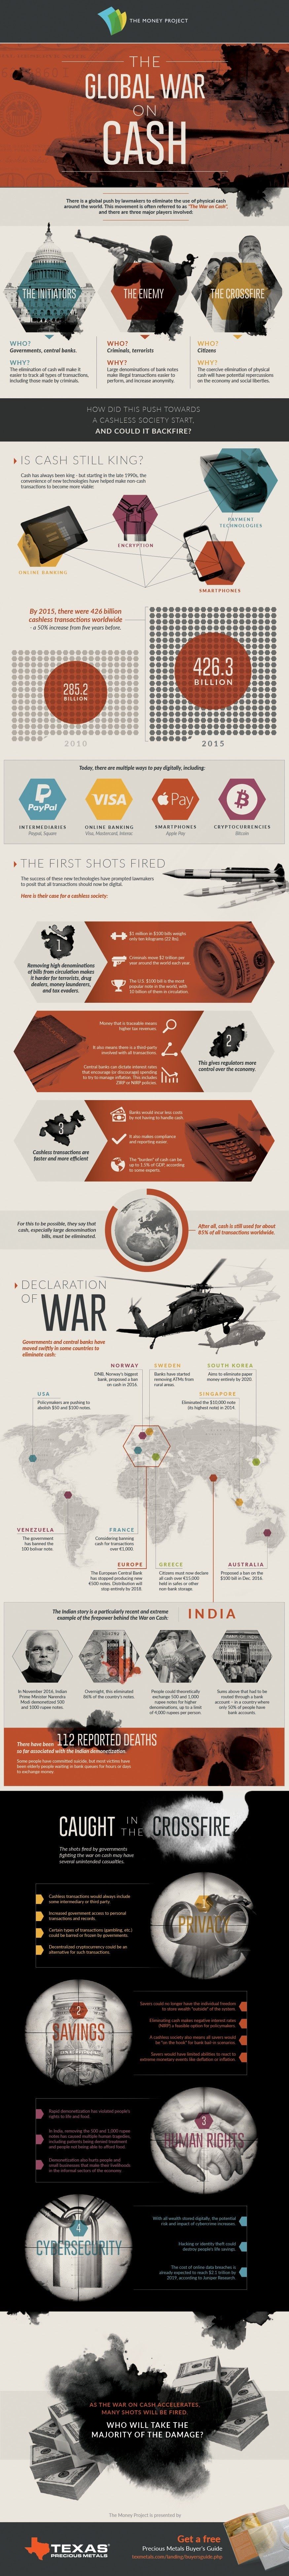 the-global-war-on-cash-infographic